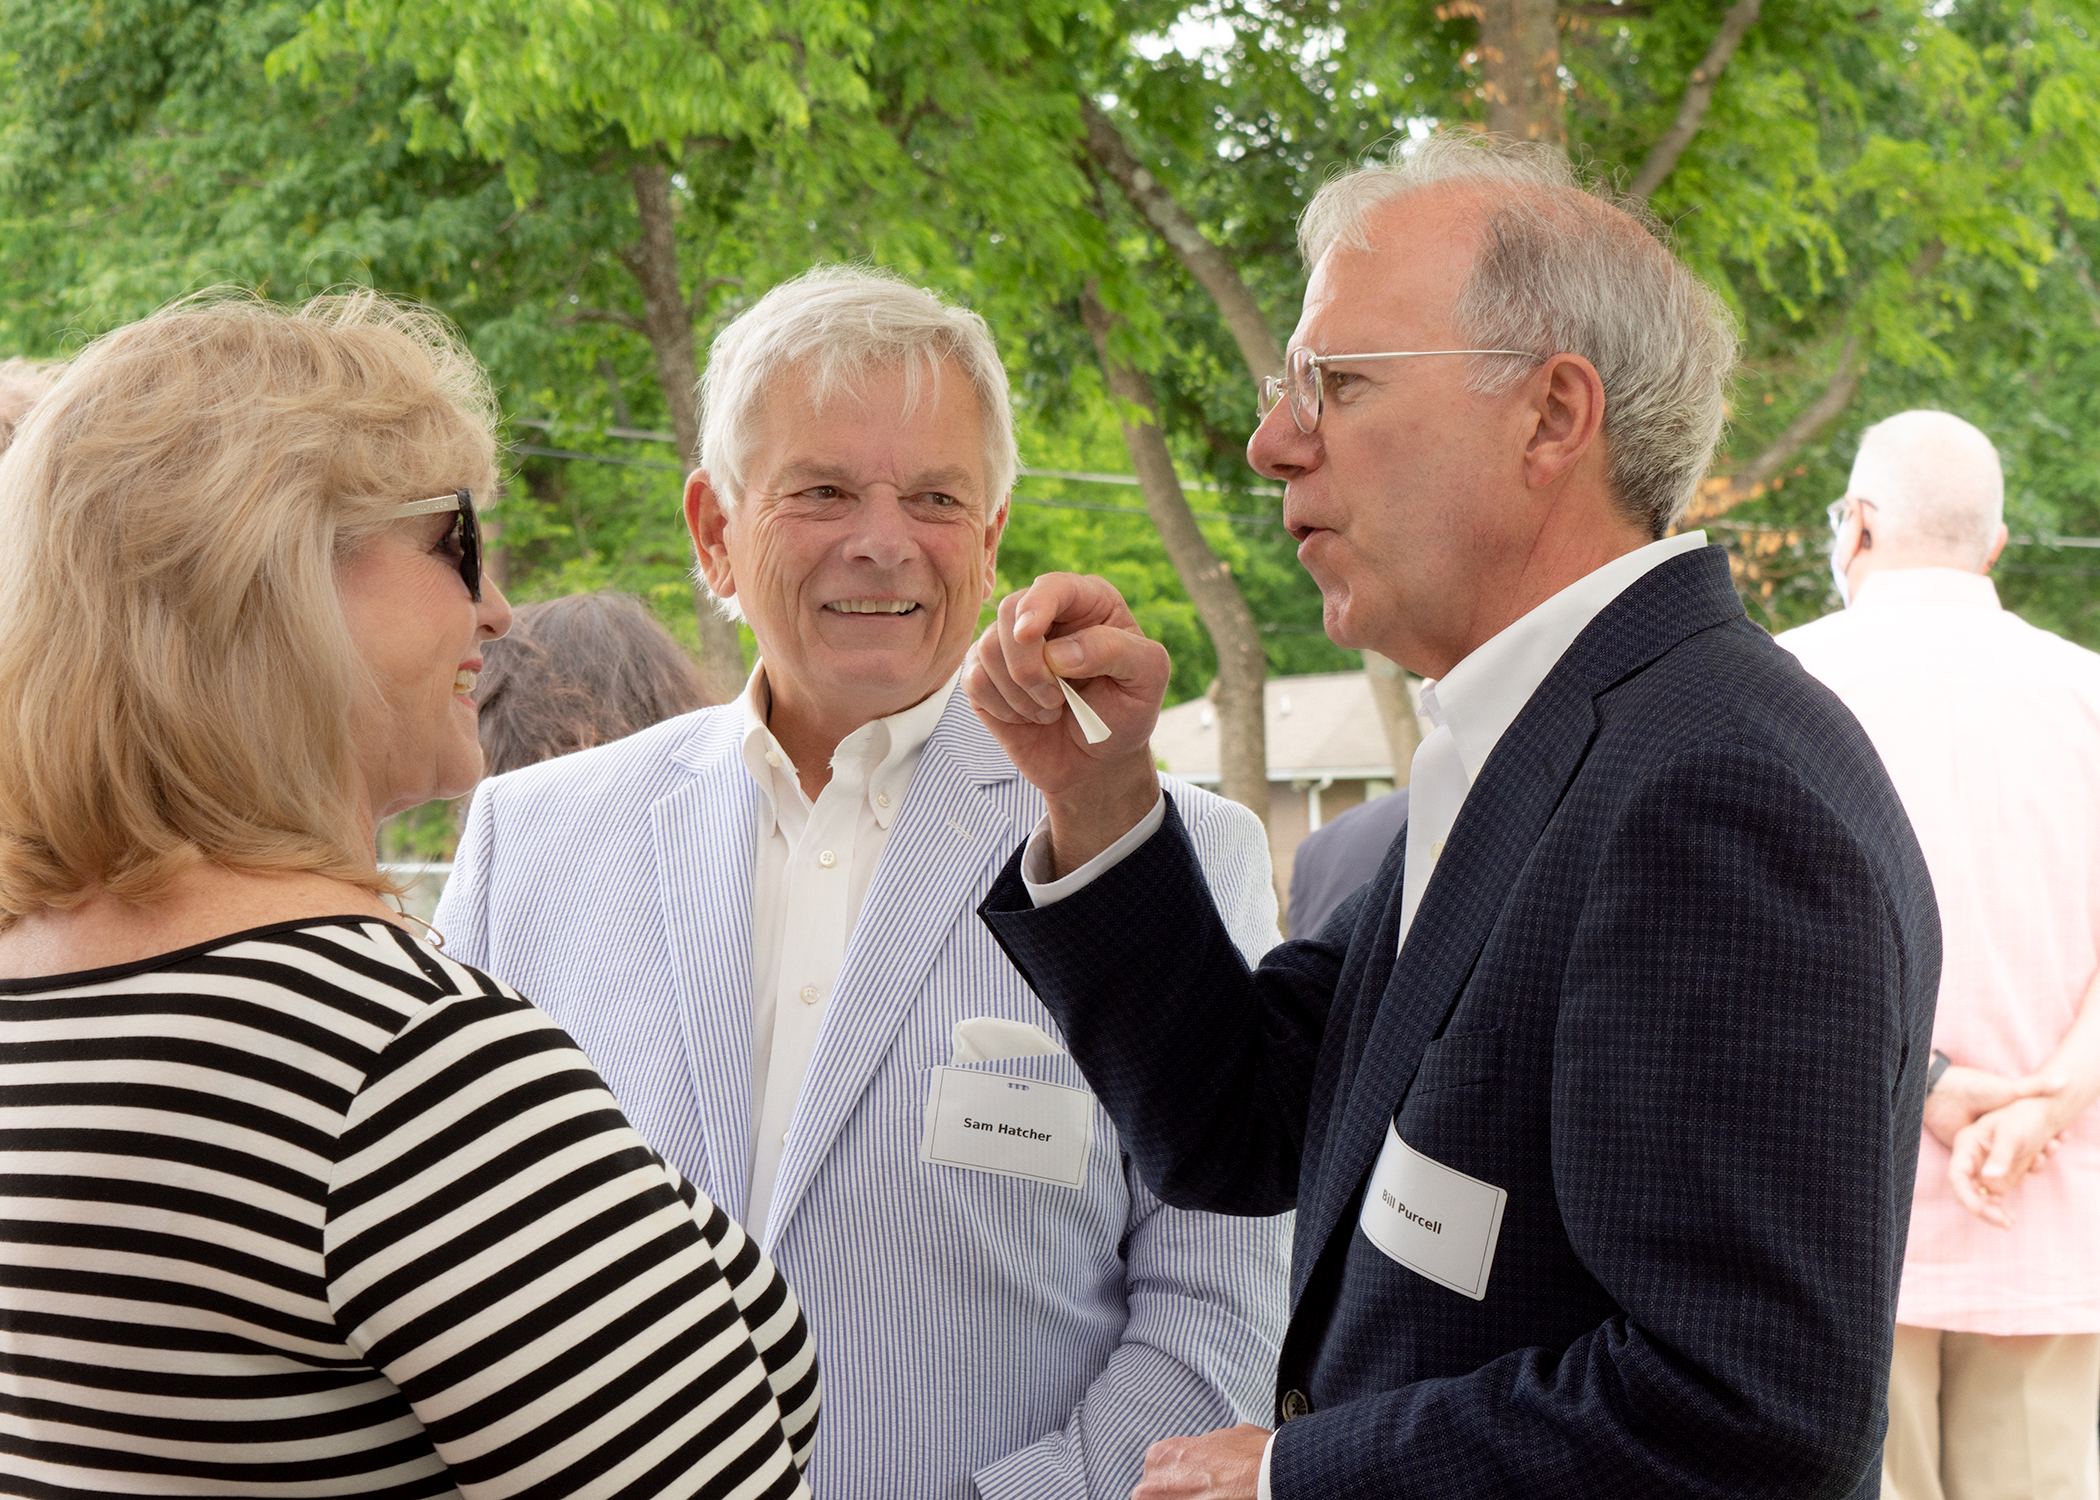 CFMT Director of Donor Education Belinda Havron chats with The Community Foundation of Wilson County board member Sam Hatcher and former Mayor Bill Purcell